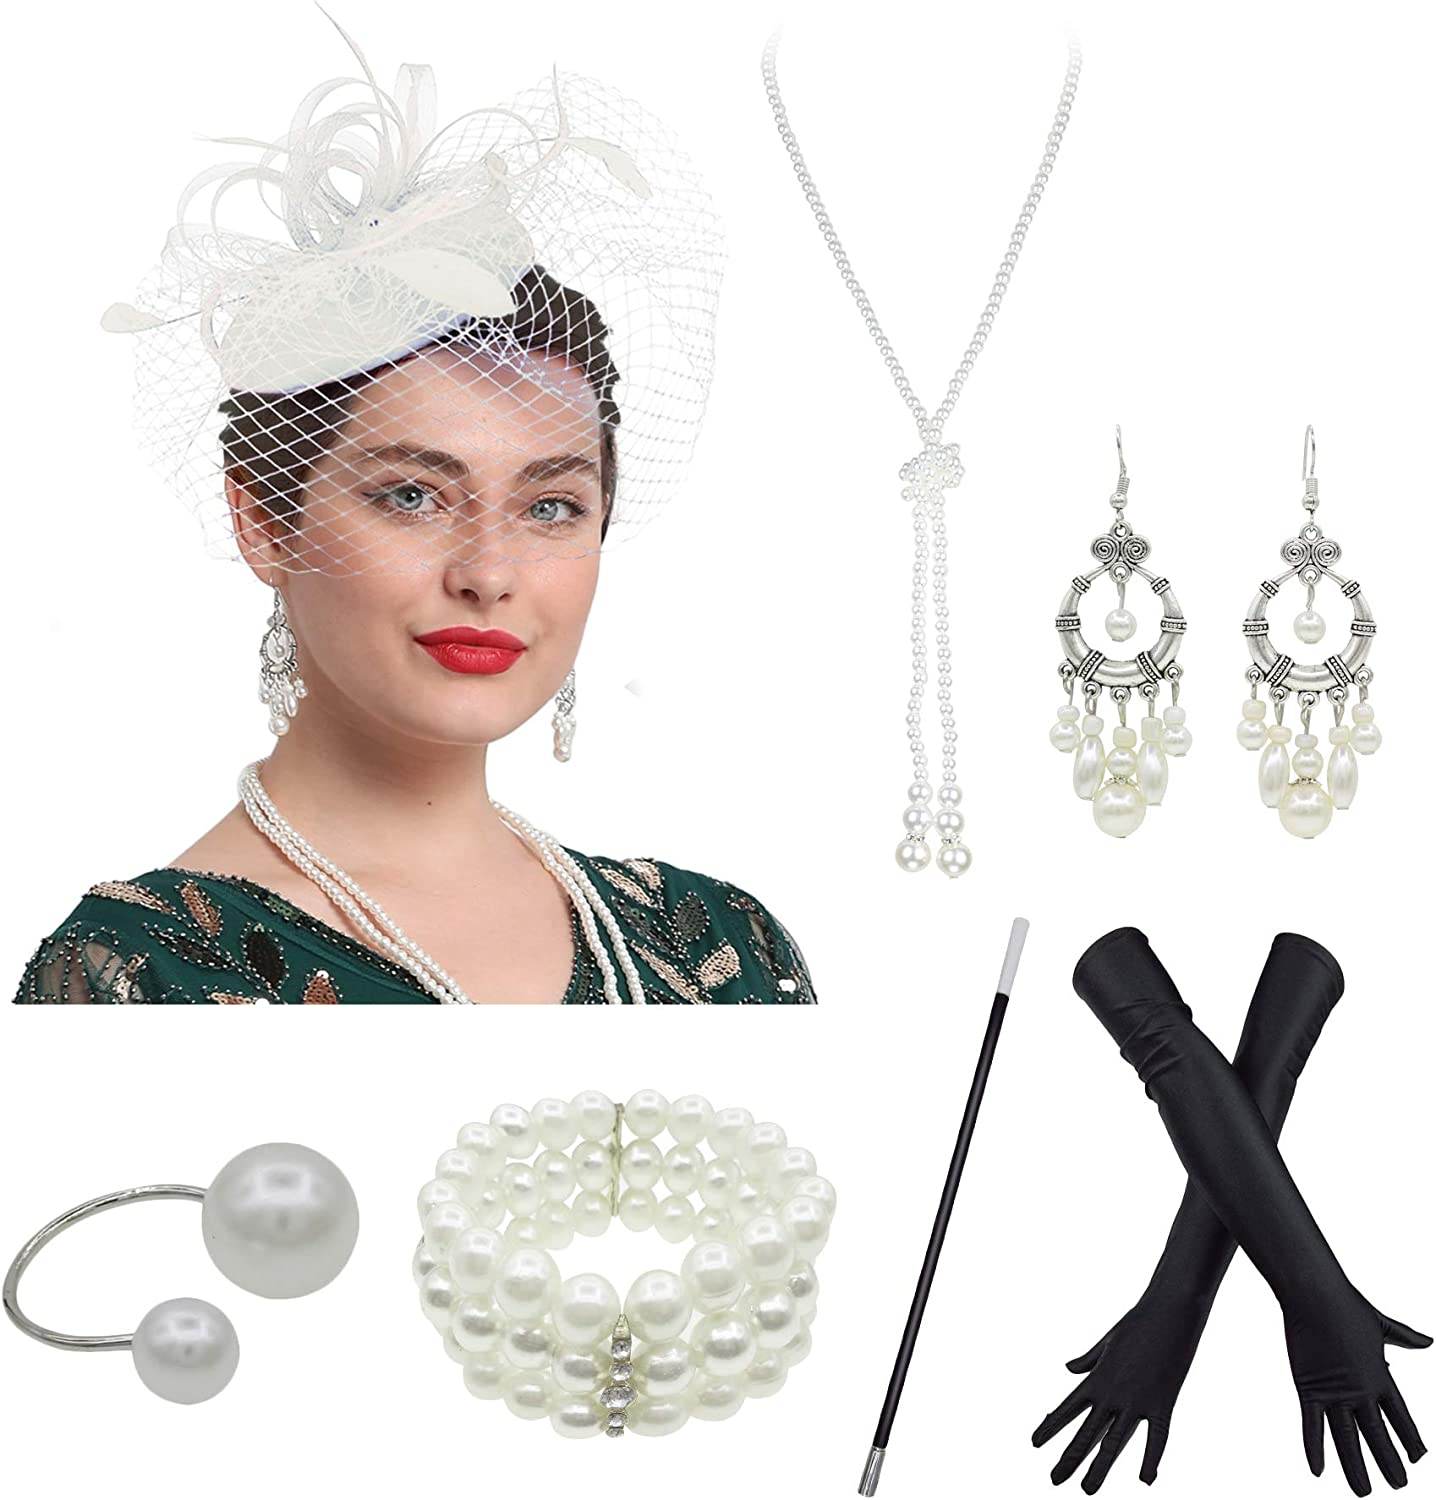 Fascinator Hat Retro Style Bird Cage Mesh Feather Wedding Hair Accessory Tea Party 20s Accessories One Size Beige At Amazon Women S Clothing Store